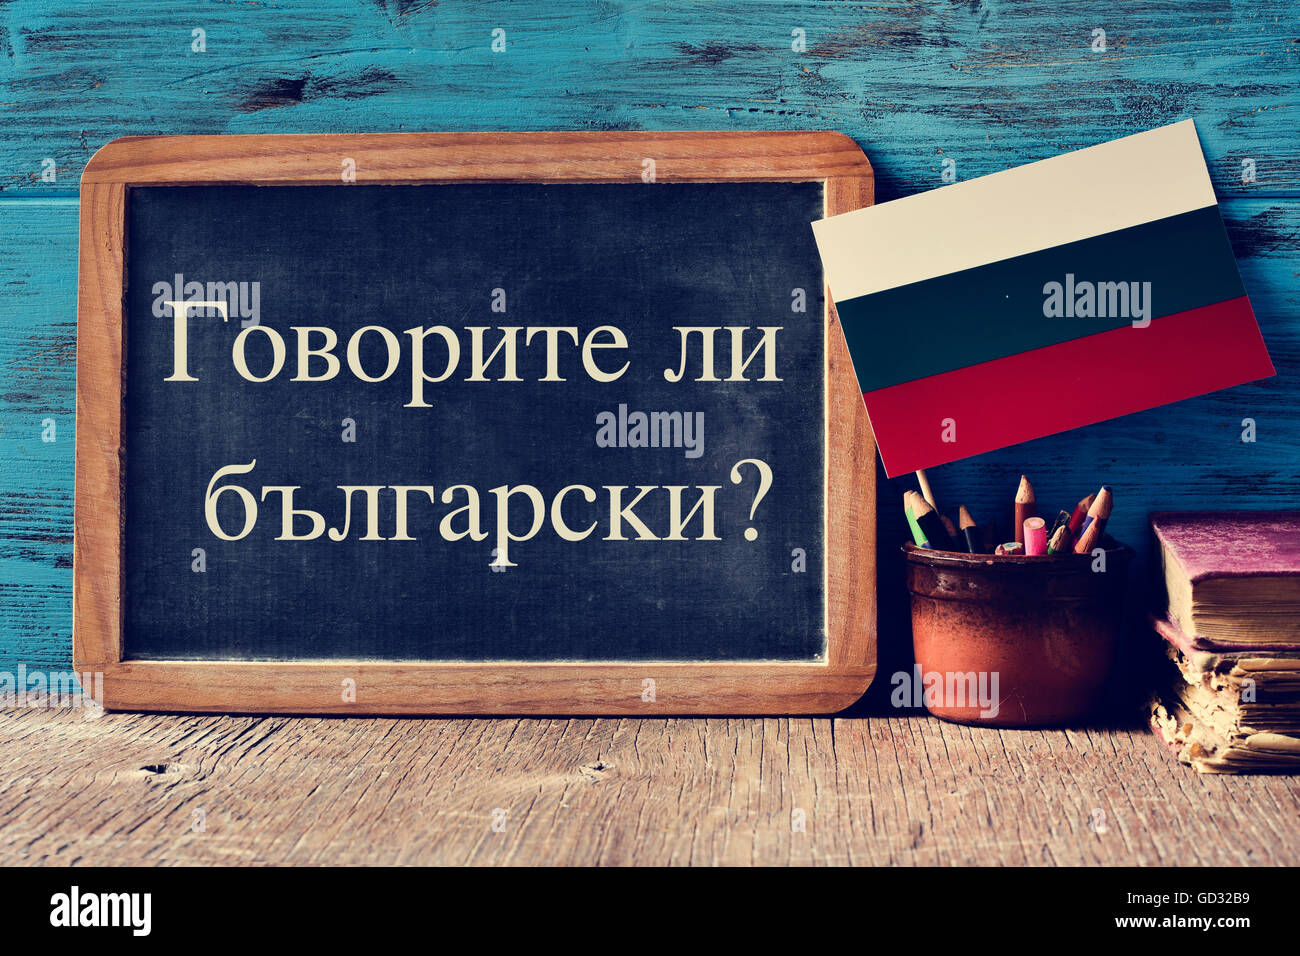 a chalkboard with the question do you speak Russian? written in Russian, a pot with pencils, some books and the - Stock Image